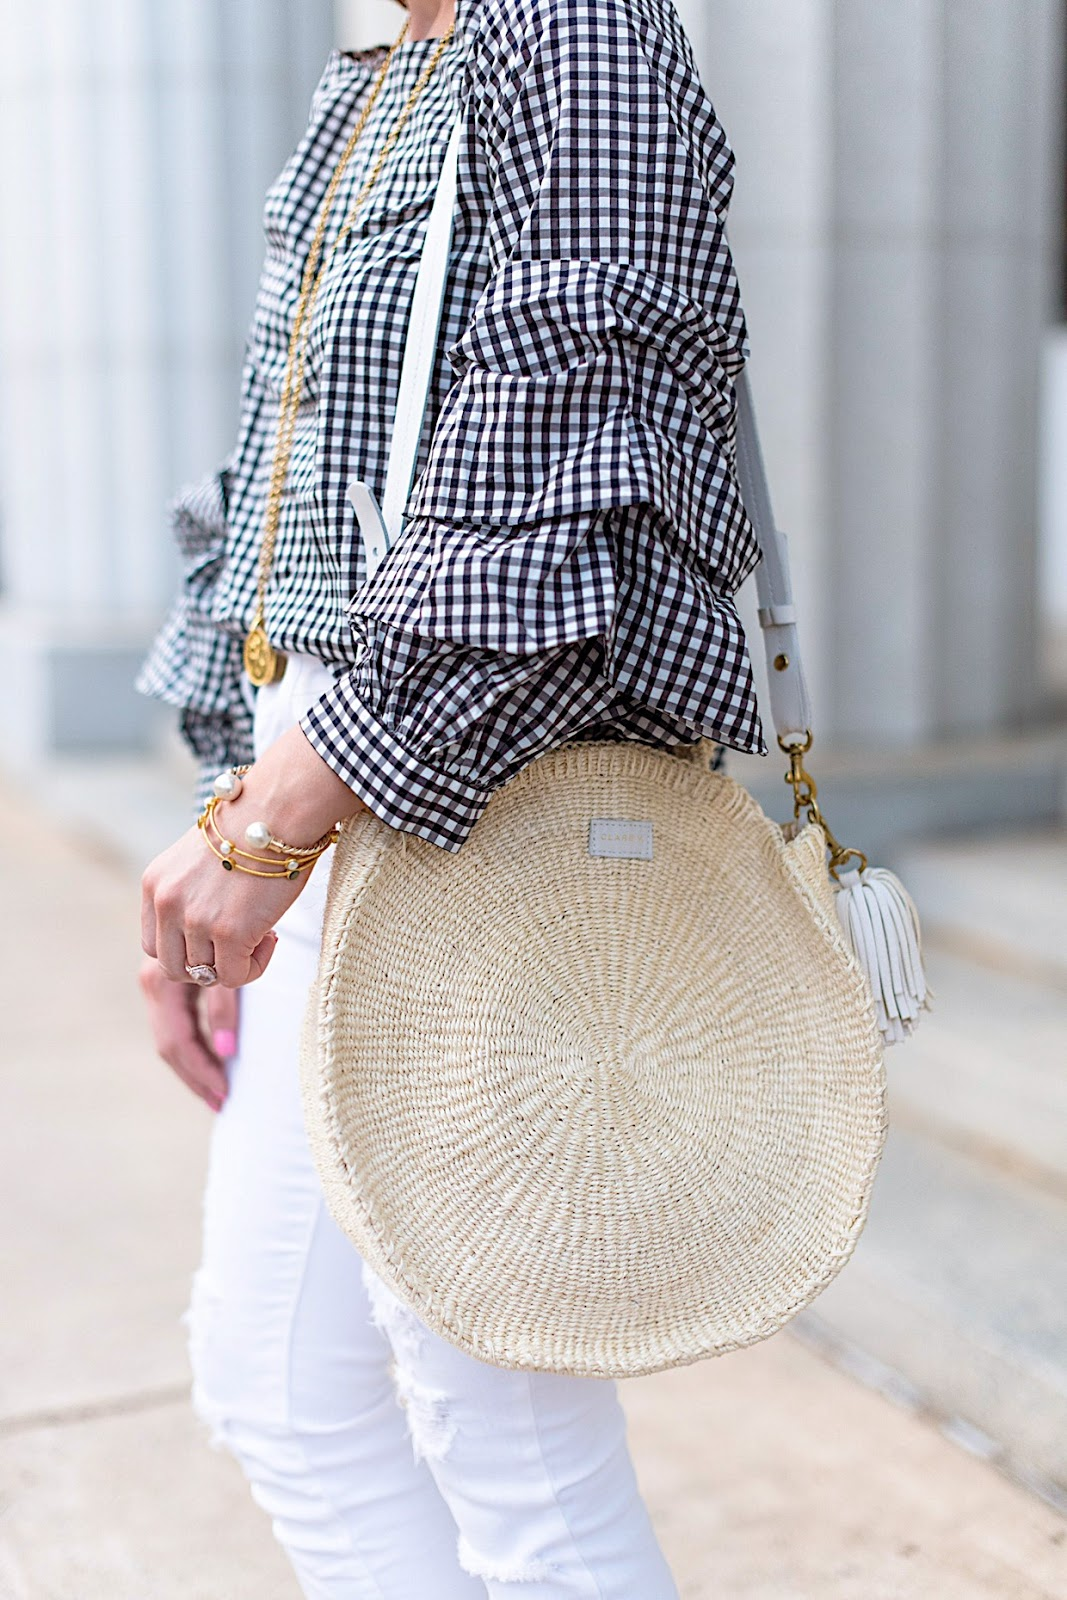 Clare V. Alice Round Straw Tote - Click through to see the full post on Something Delightful Blog